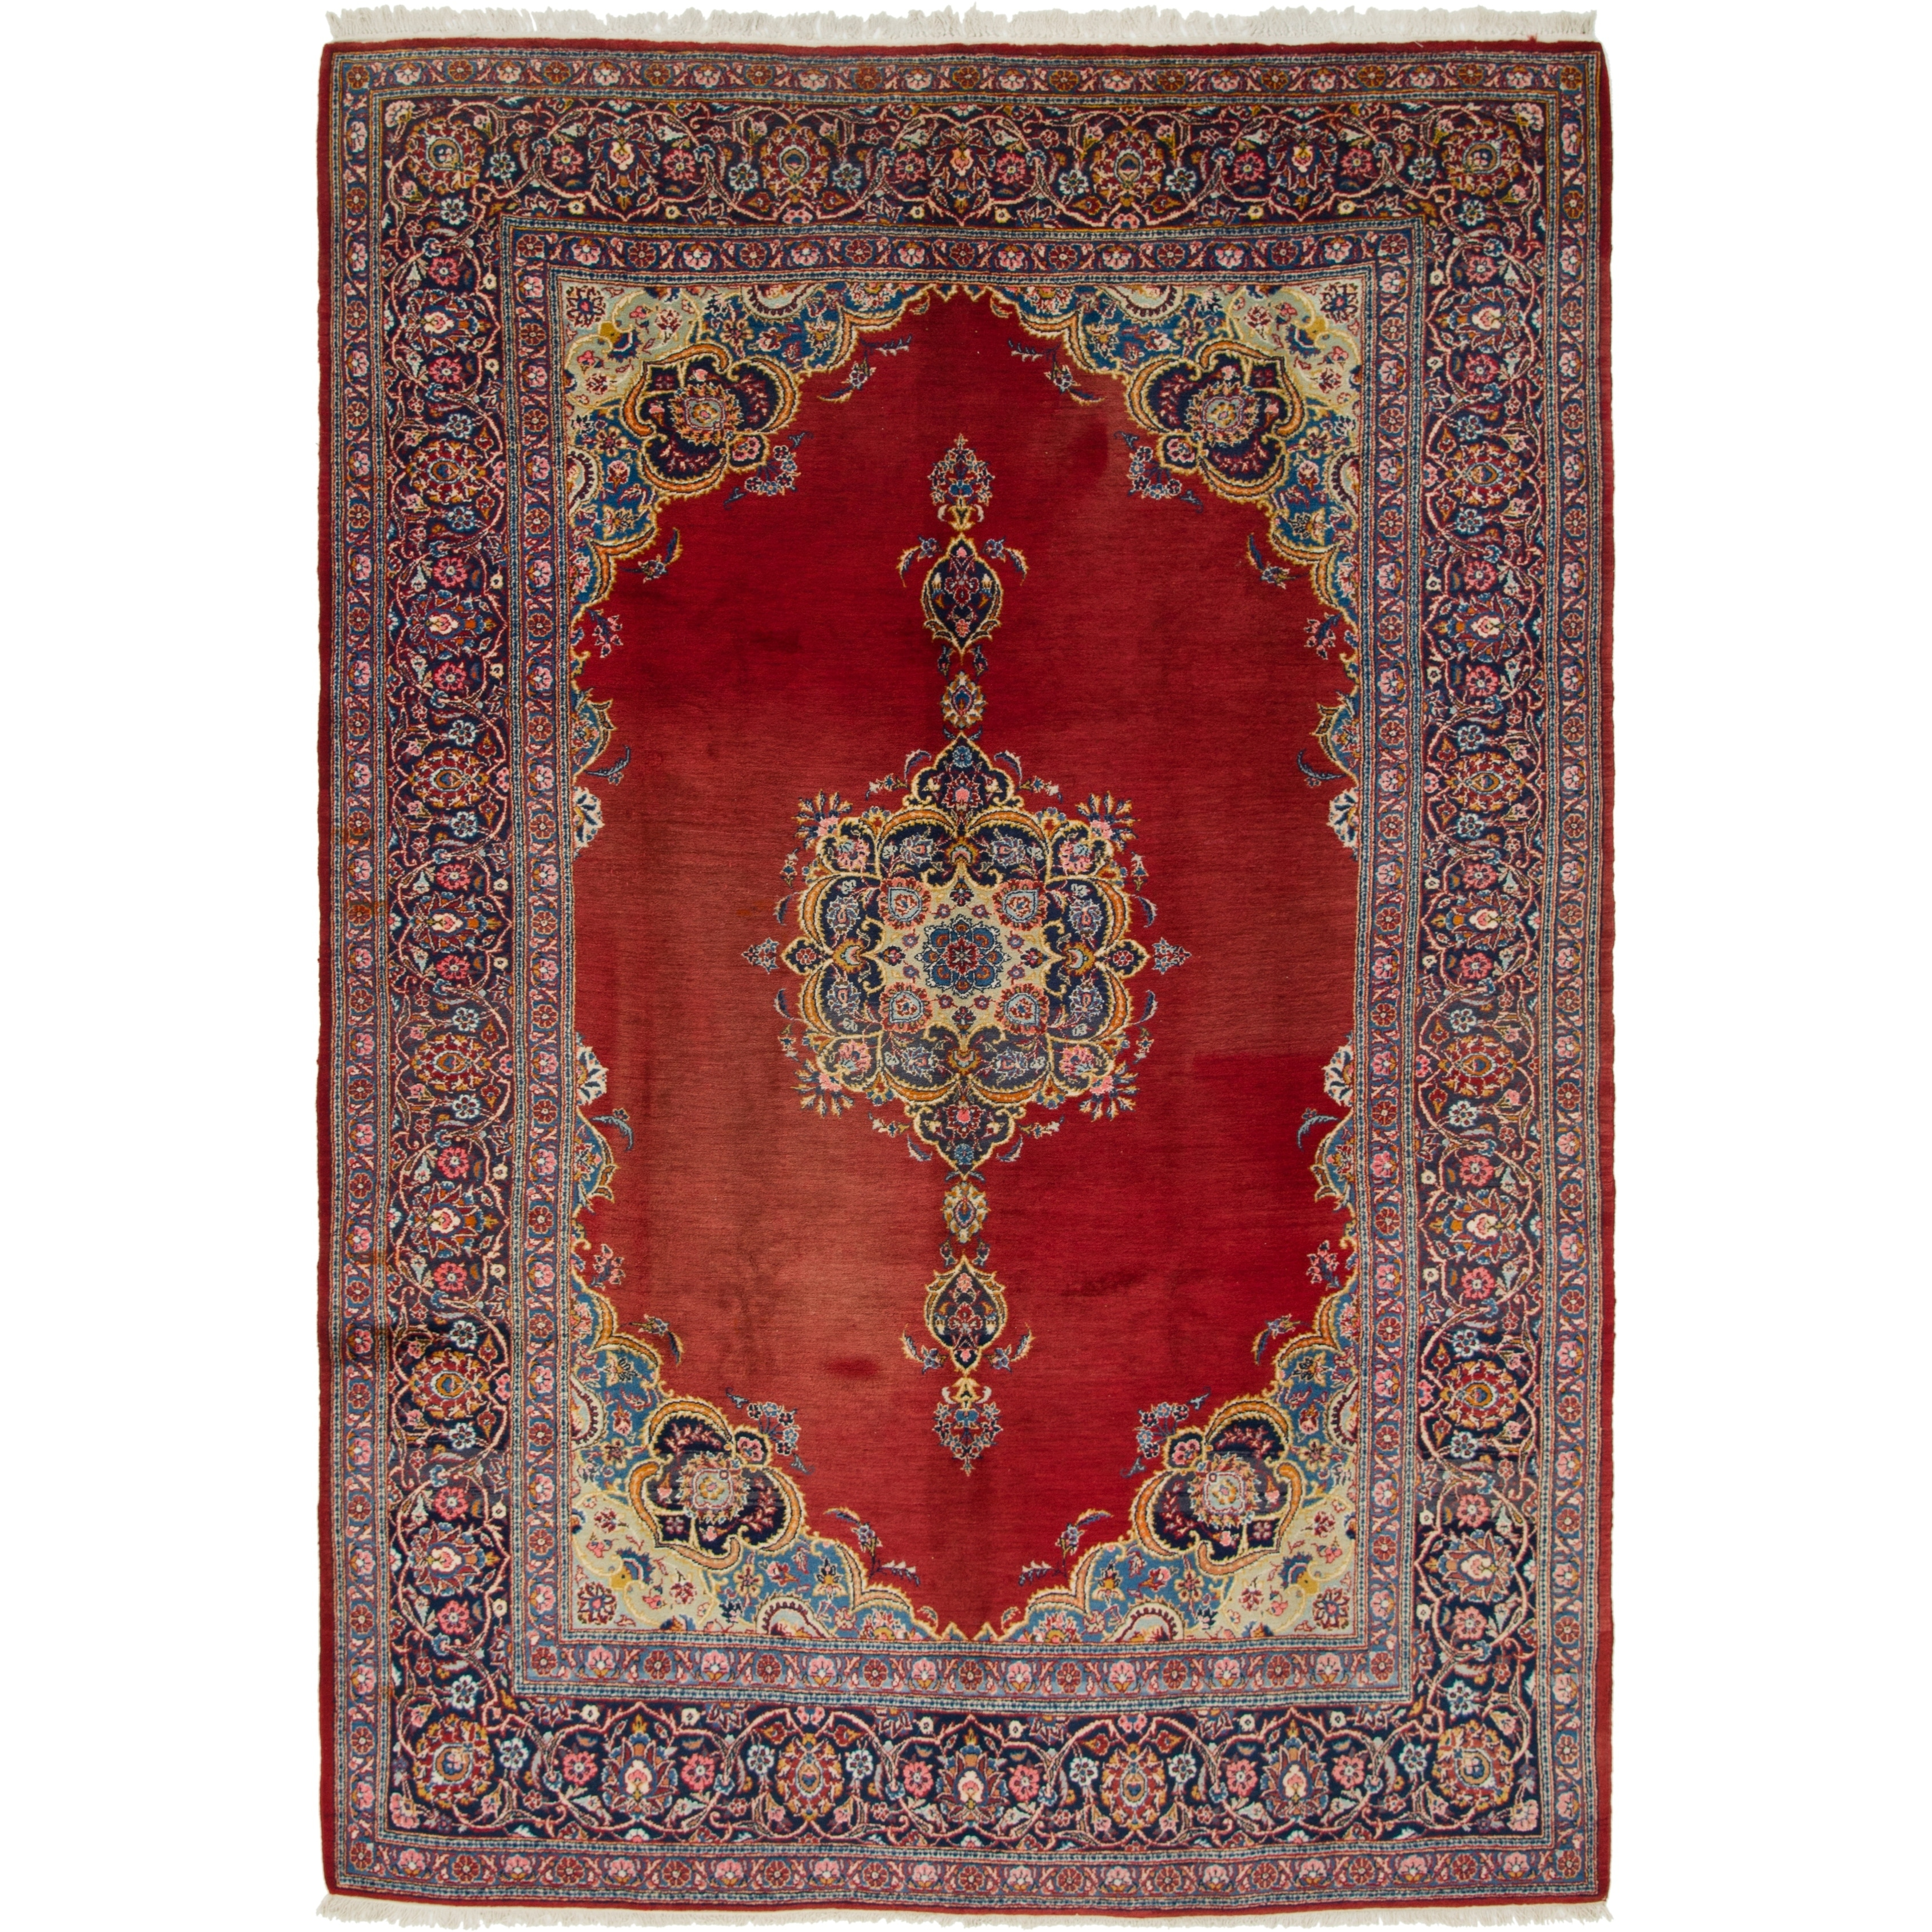 Hand Knotted Kashan Semi Antique Wool Area Rug - 8 6 x 12 5 (Red - 8 6 x 12 5)